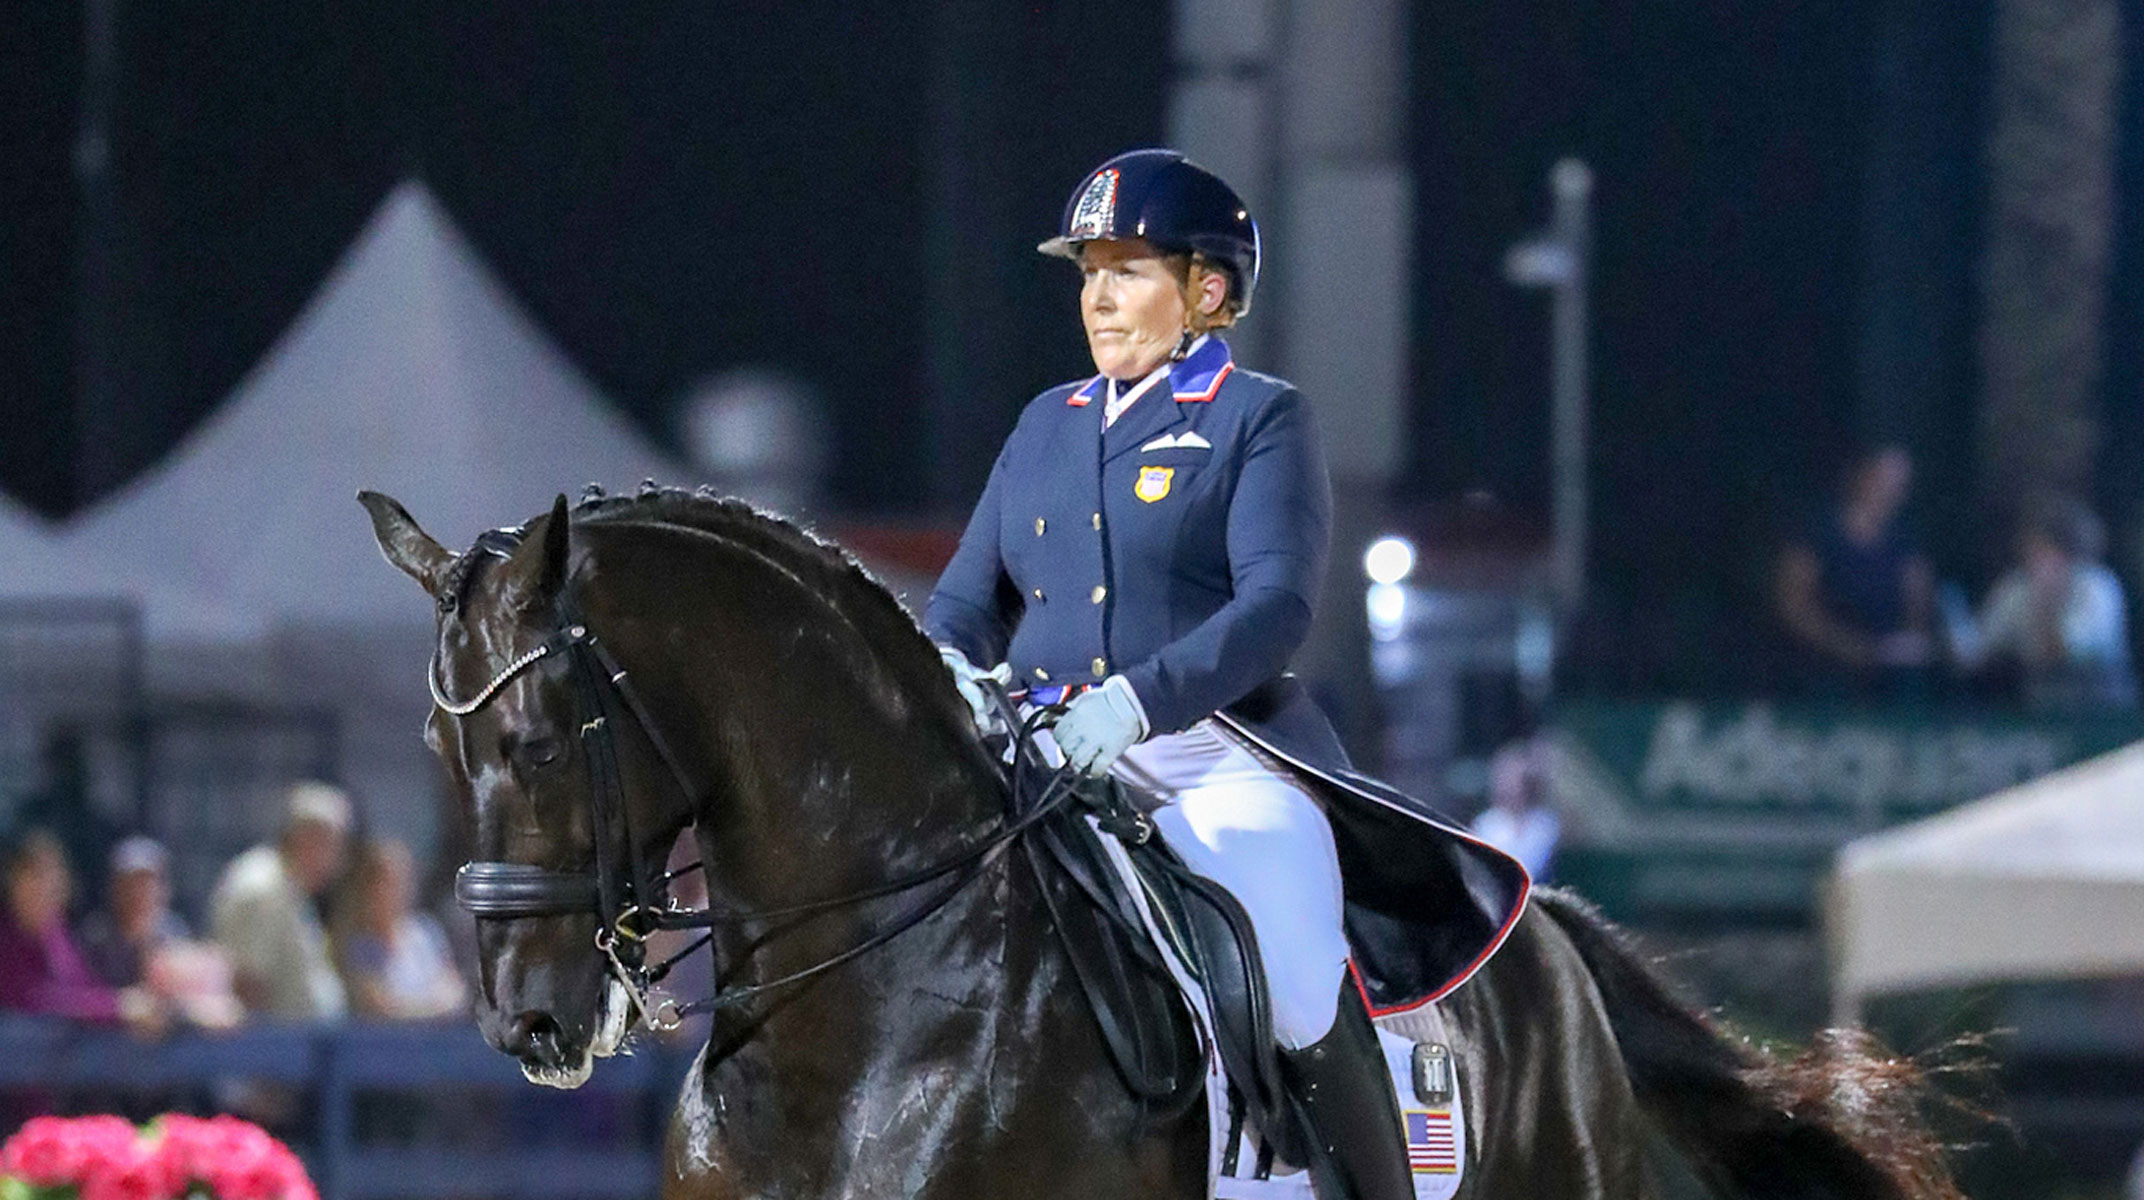 Team Usa Wins Fei Dressage Nations Cup Opener